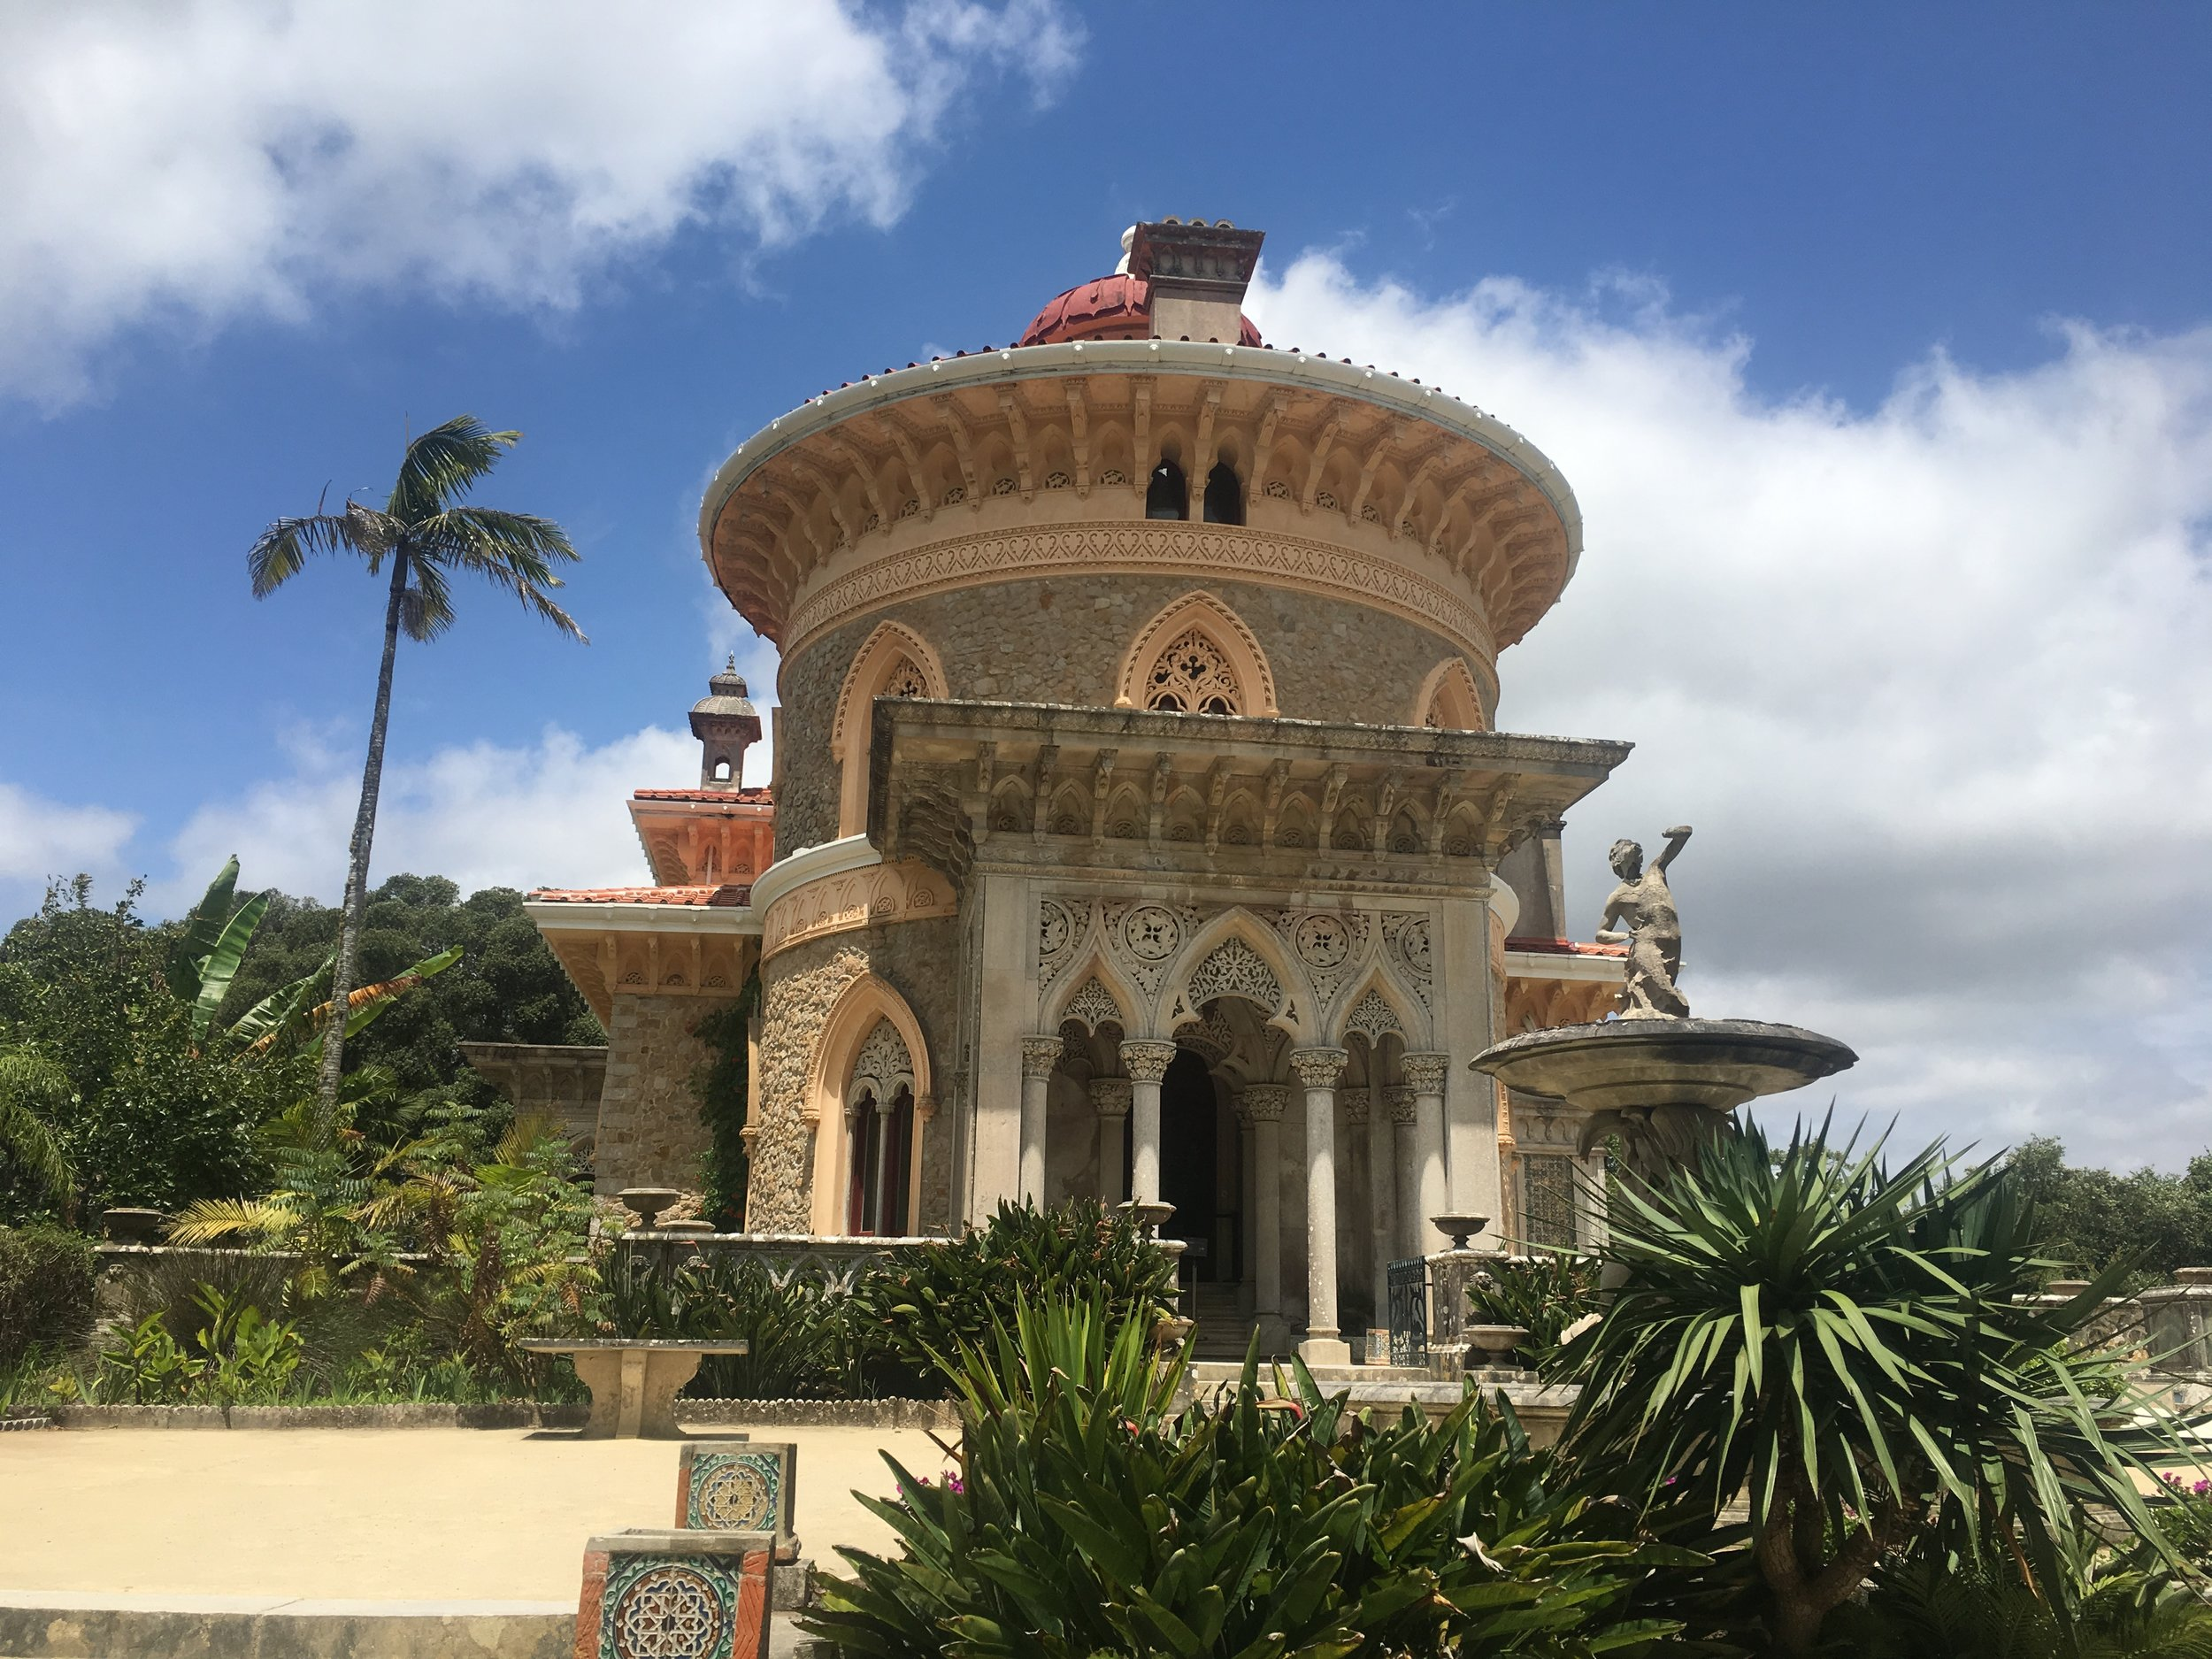 Monserrate is an elegant symmetric palace with a lot of eastern influence in the design.